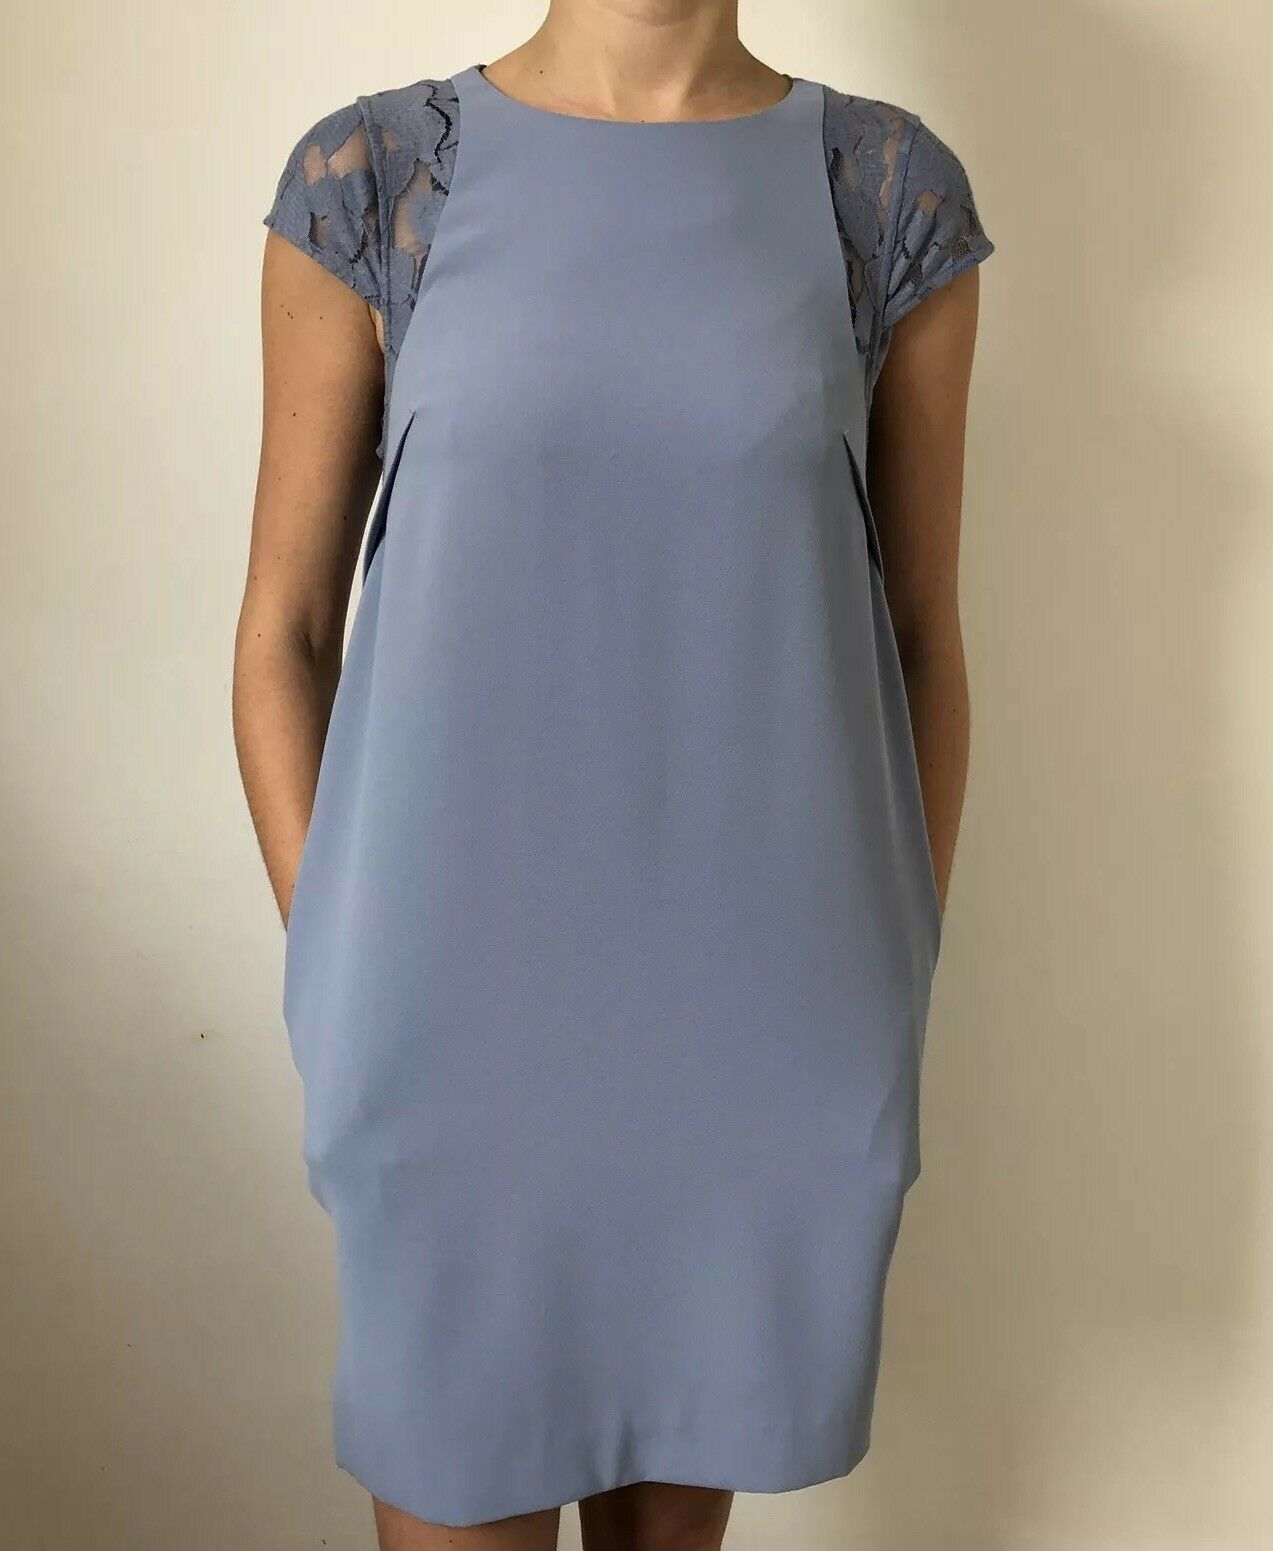 Women Reiss Dress Size 12 A Line bluee Lace Knee Length Line Sleeveless Round Nec